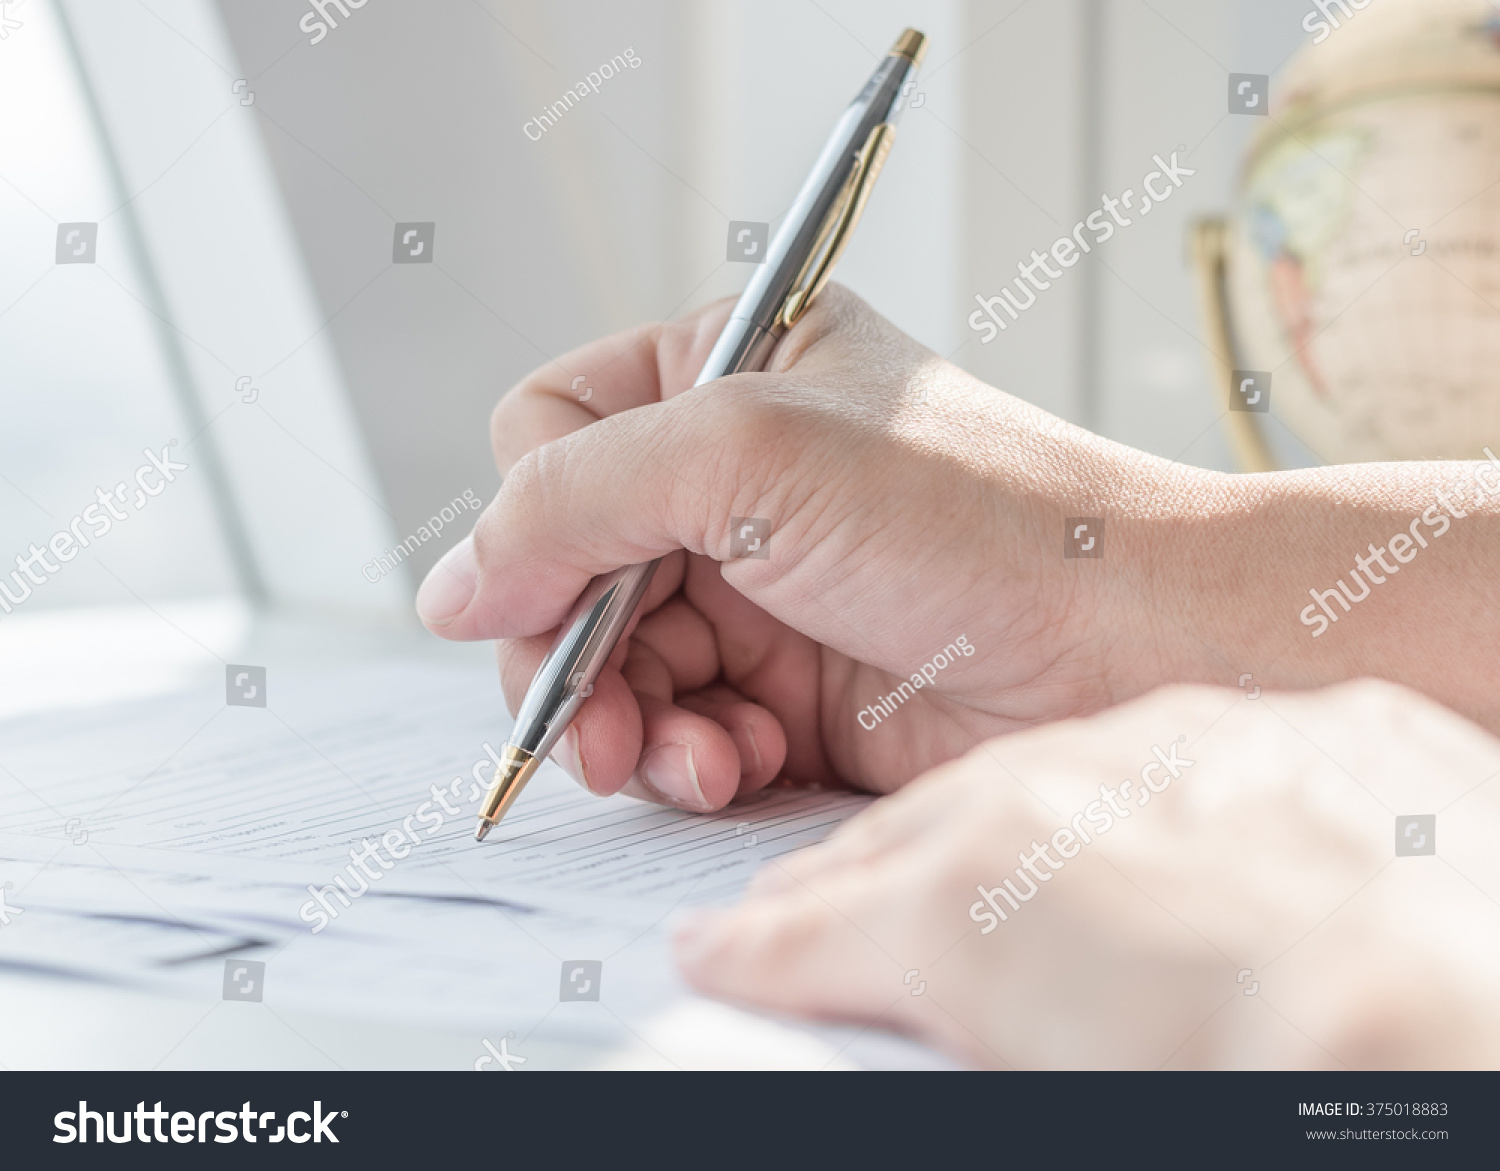 Persons Hand Ballpoint Pen Writing On Photo 375018883 – Blank Mortgage Form